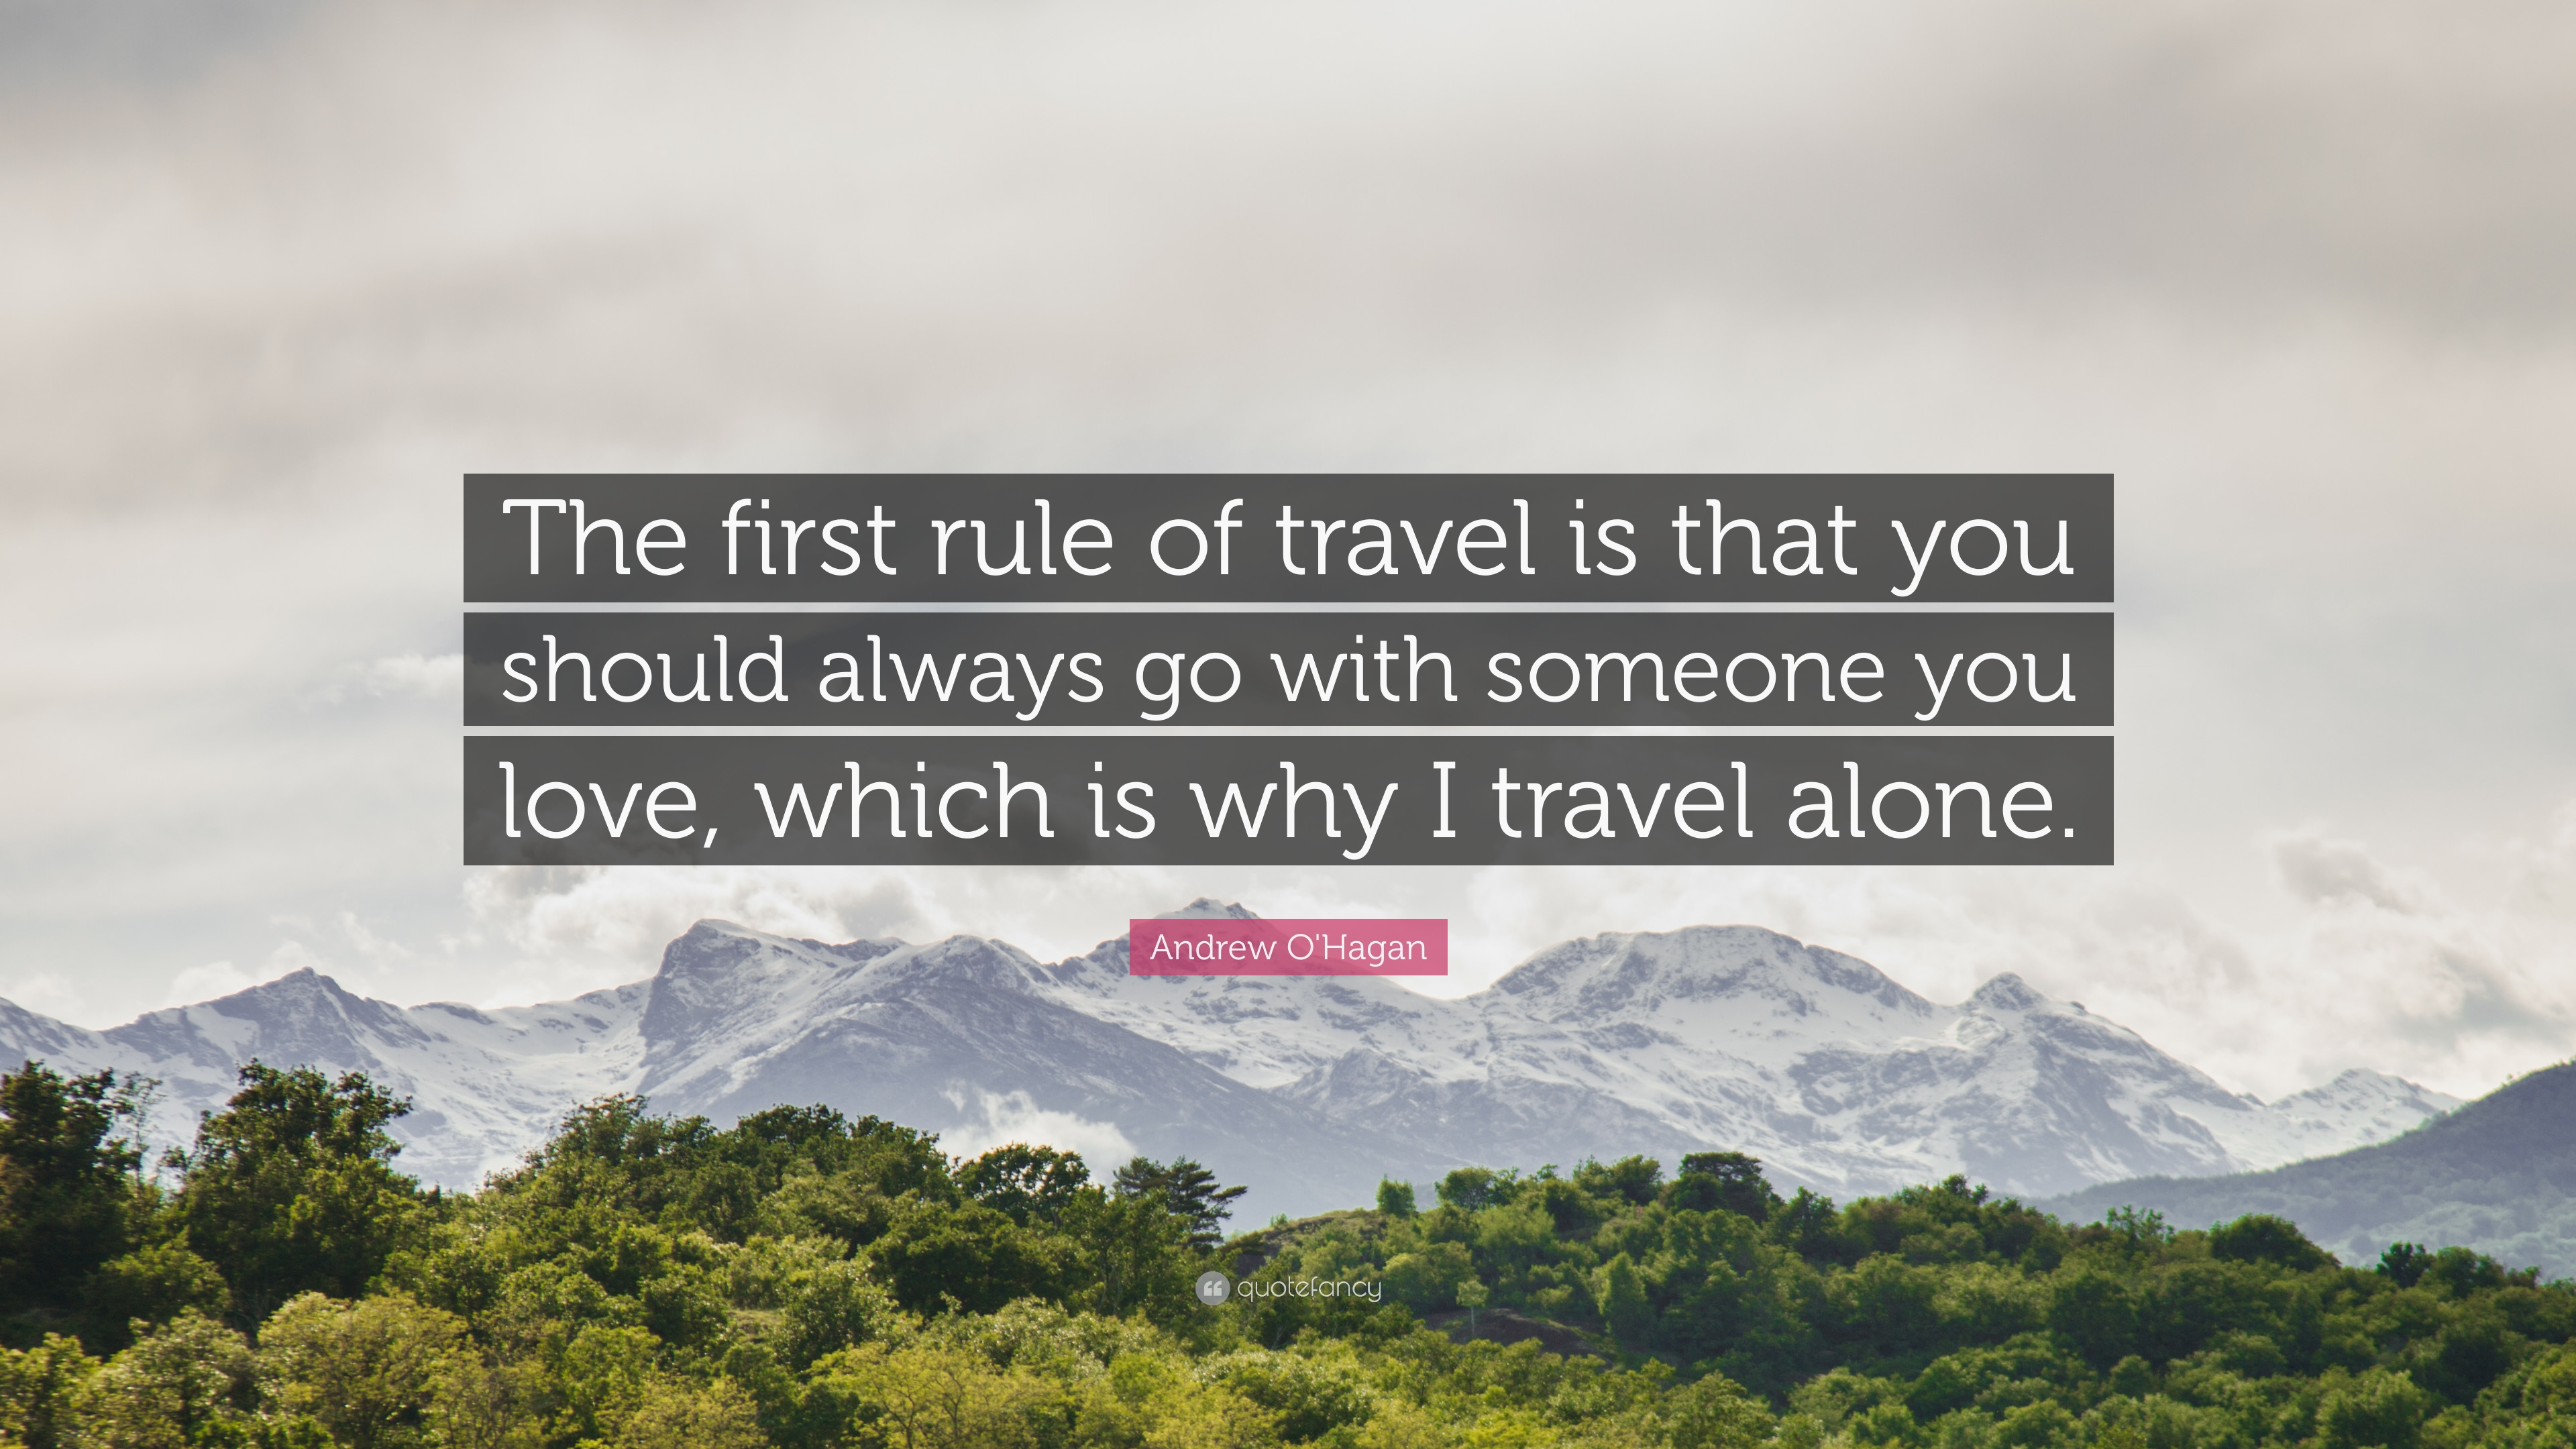 Andrew Ohagan Quote The First Rule Of Travel Is That You Should